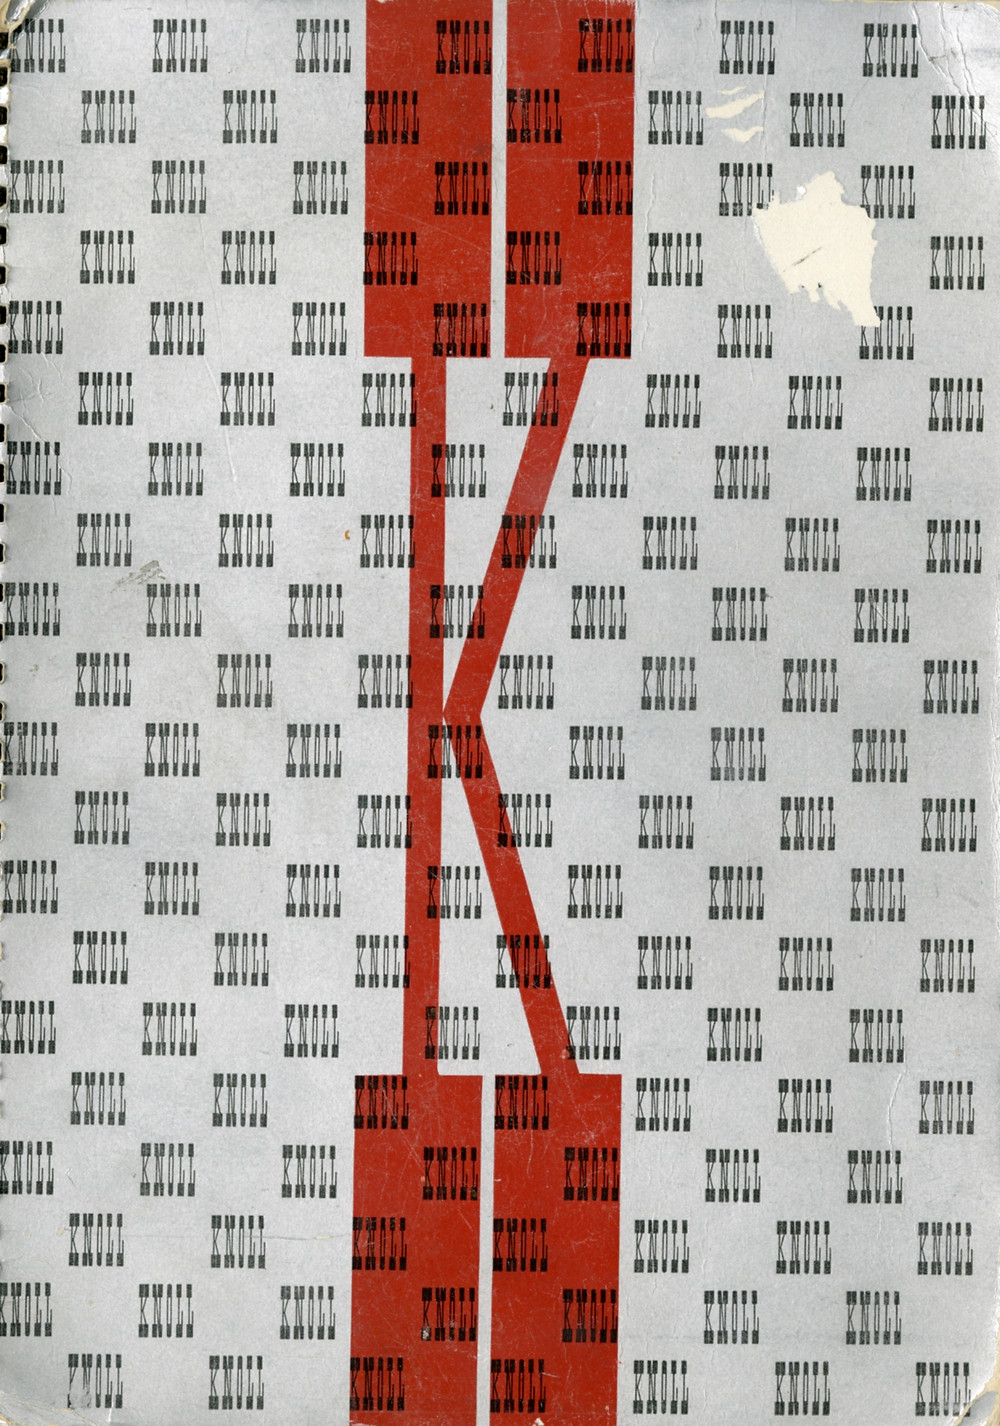 Knoll magazine cover